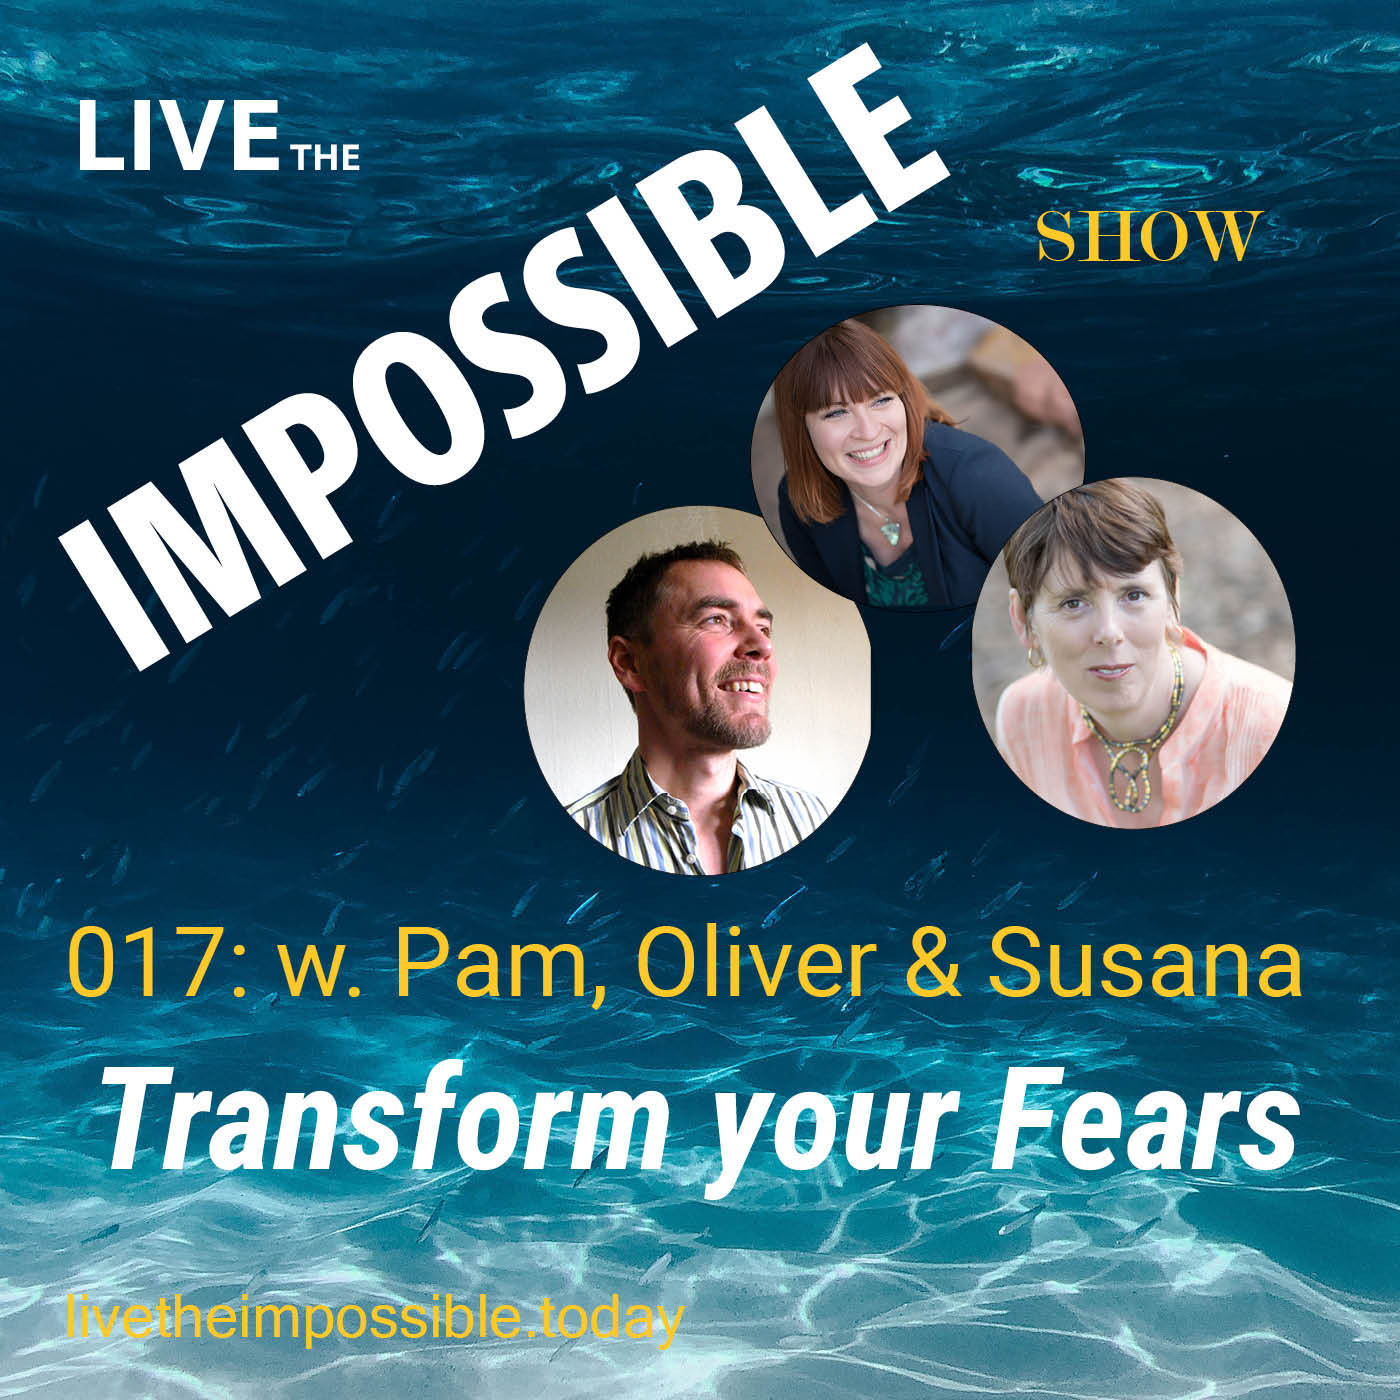 transform your fears